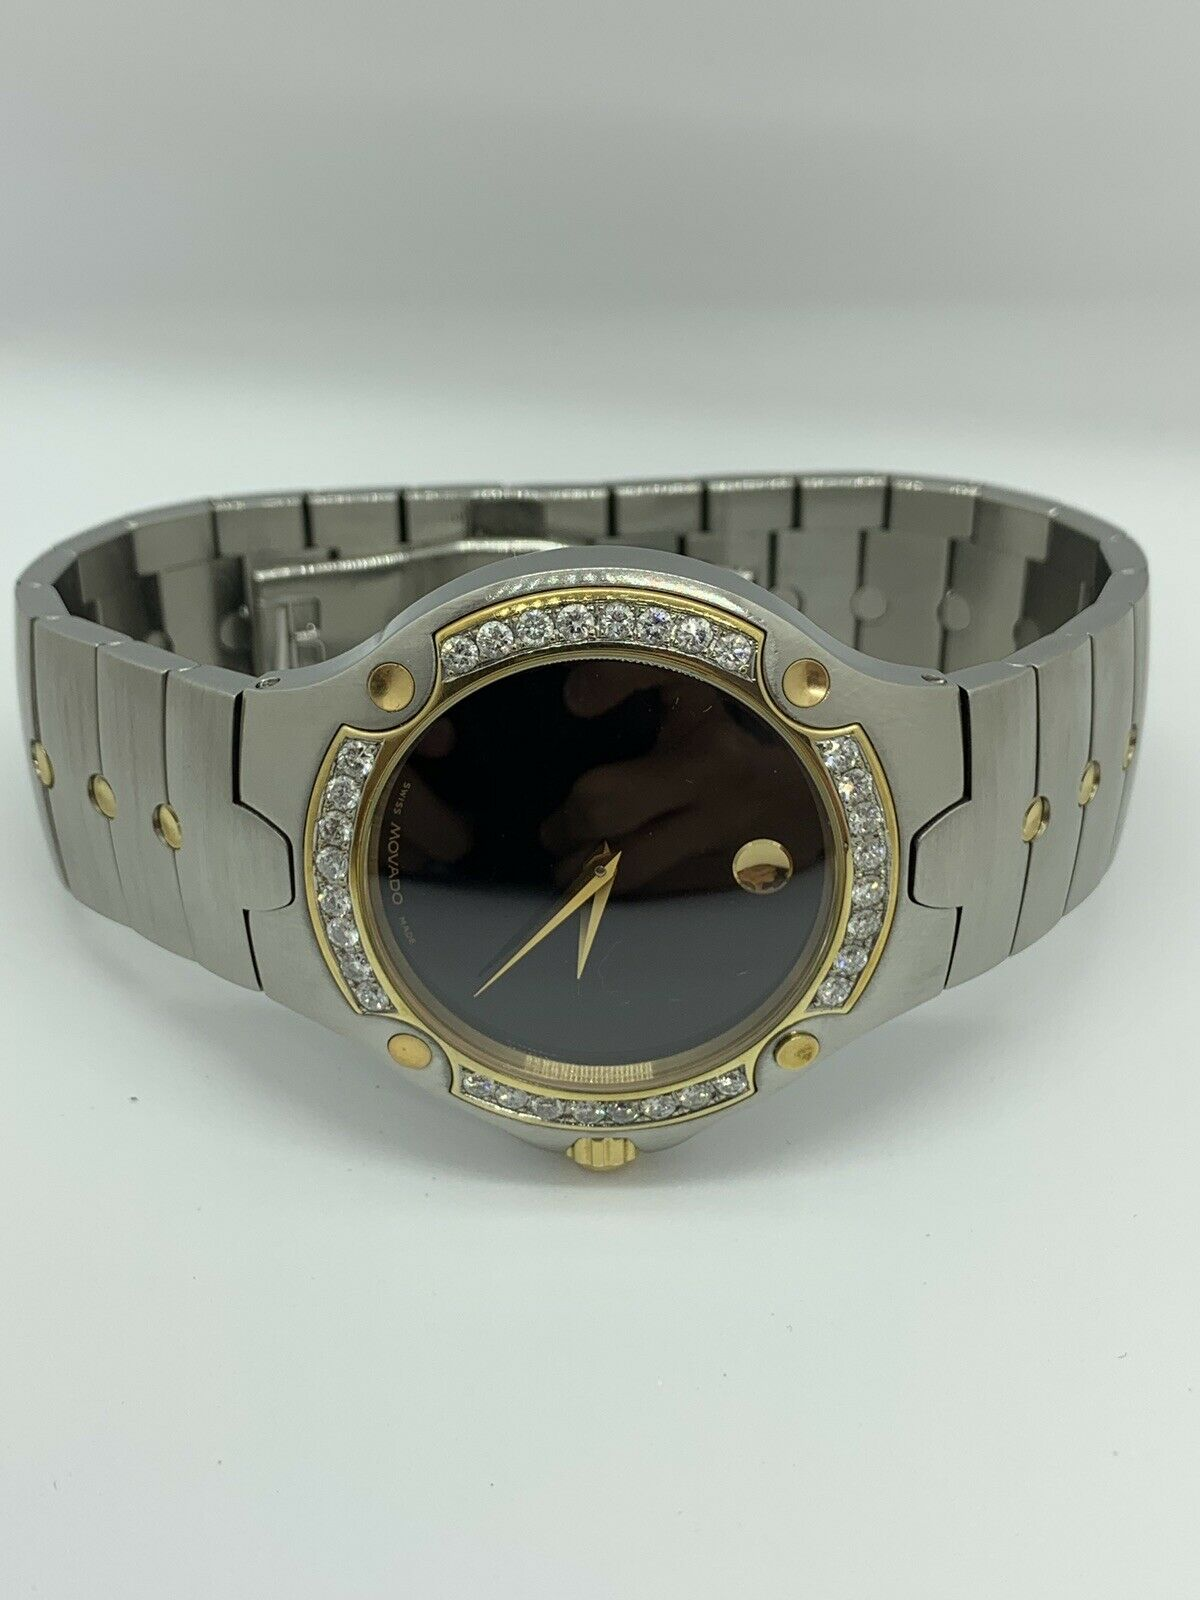 Movado Mens Watch Pre-owned  - $450.00